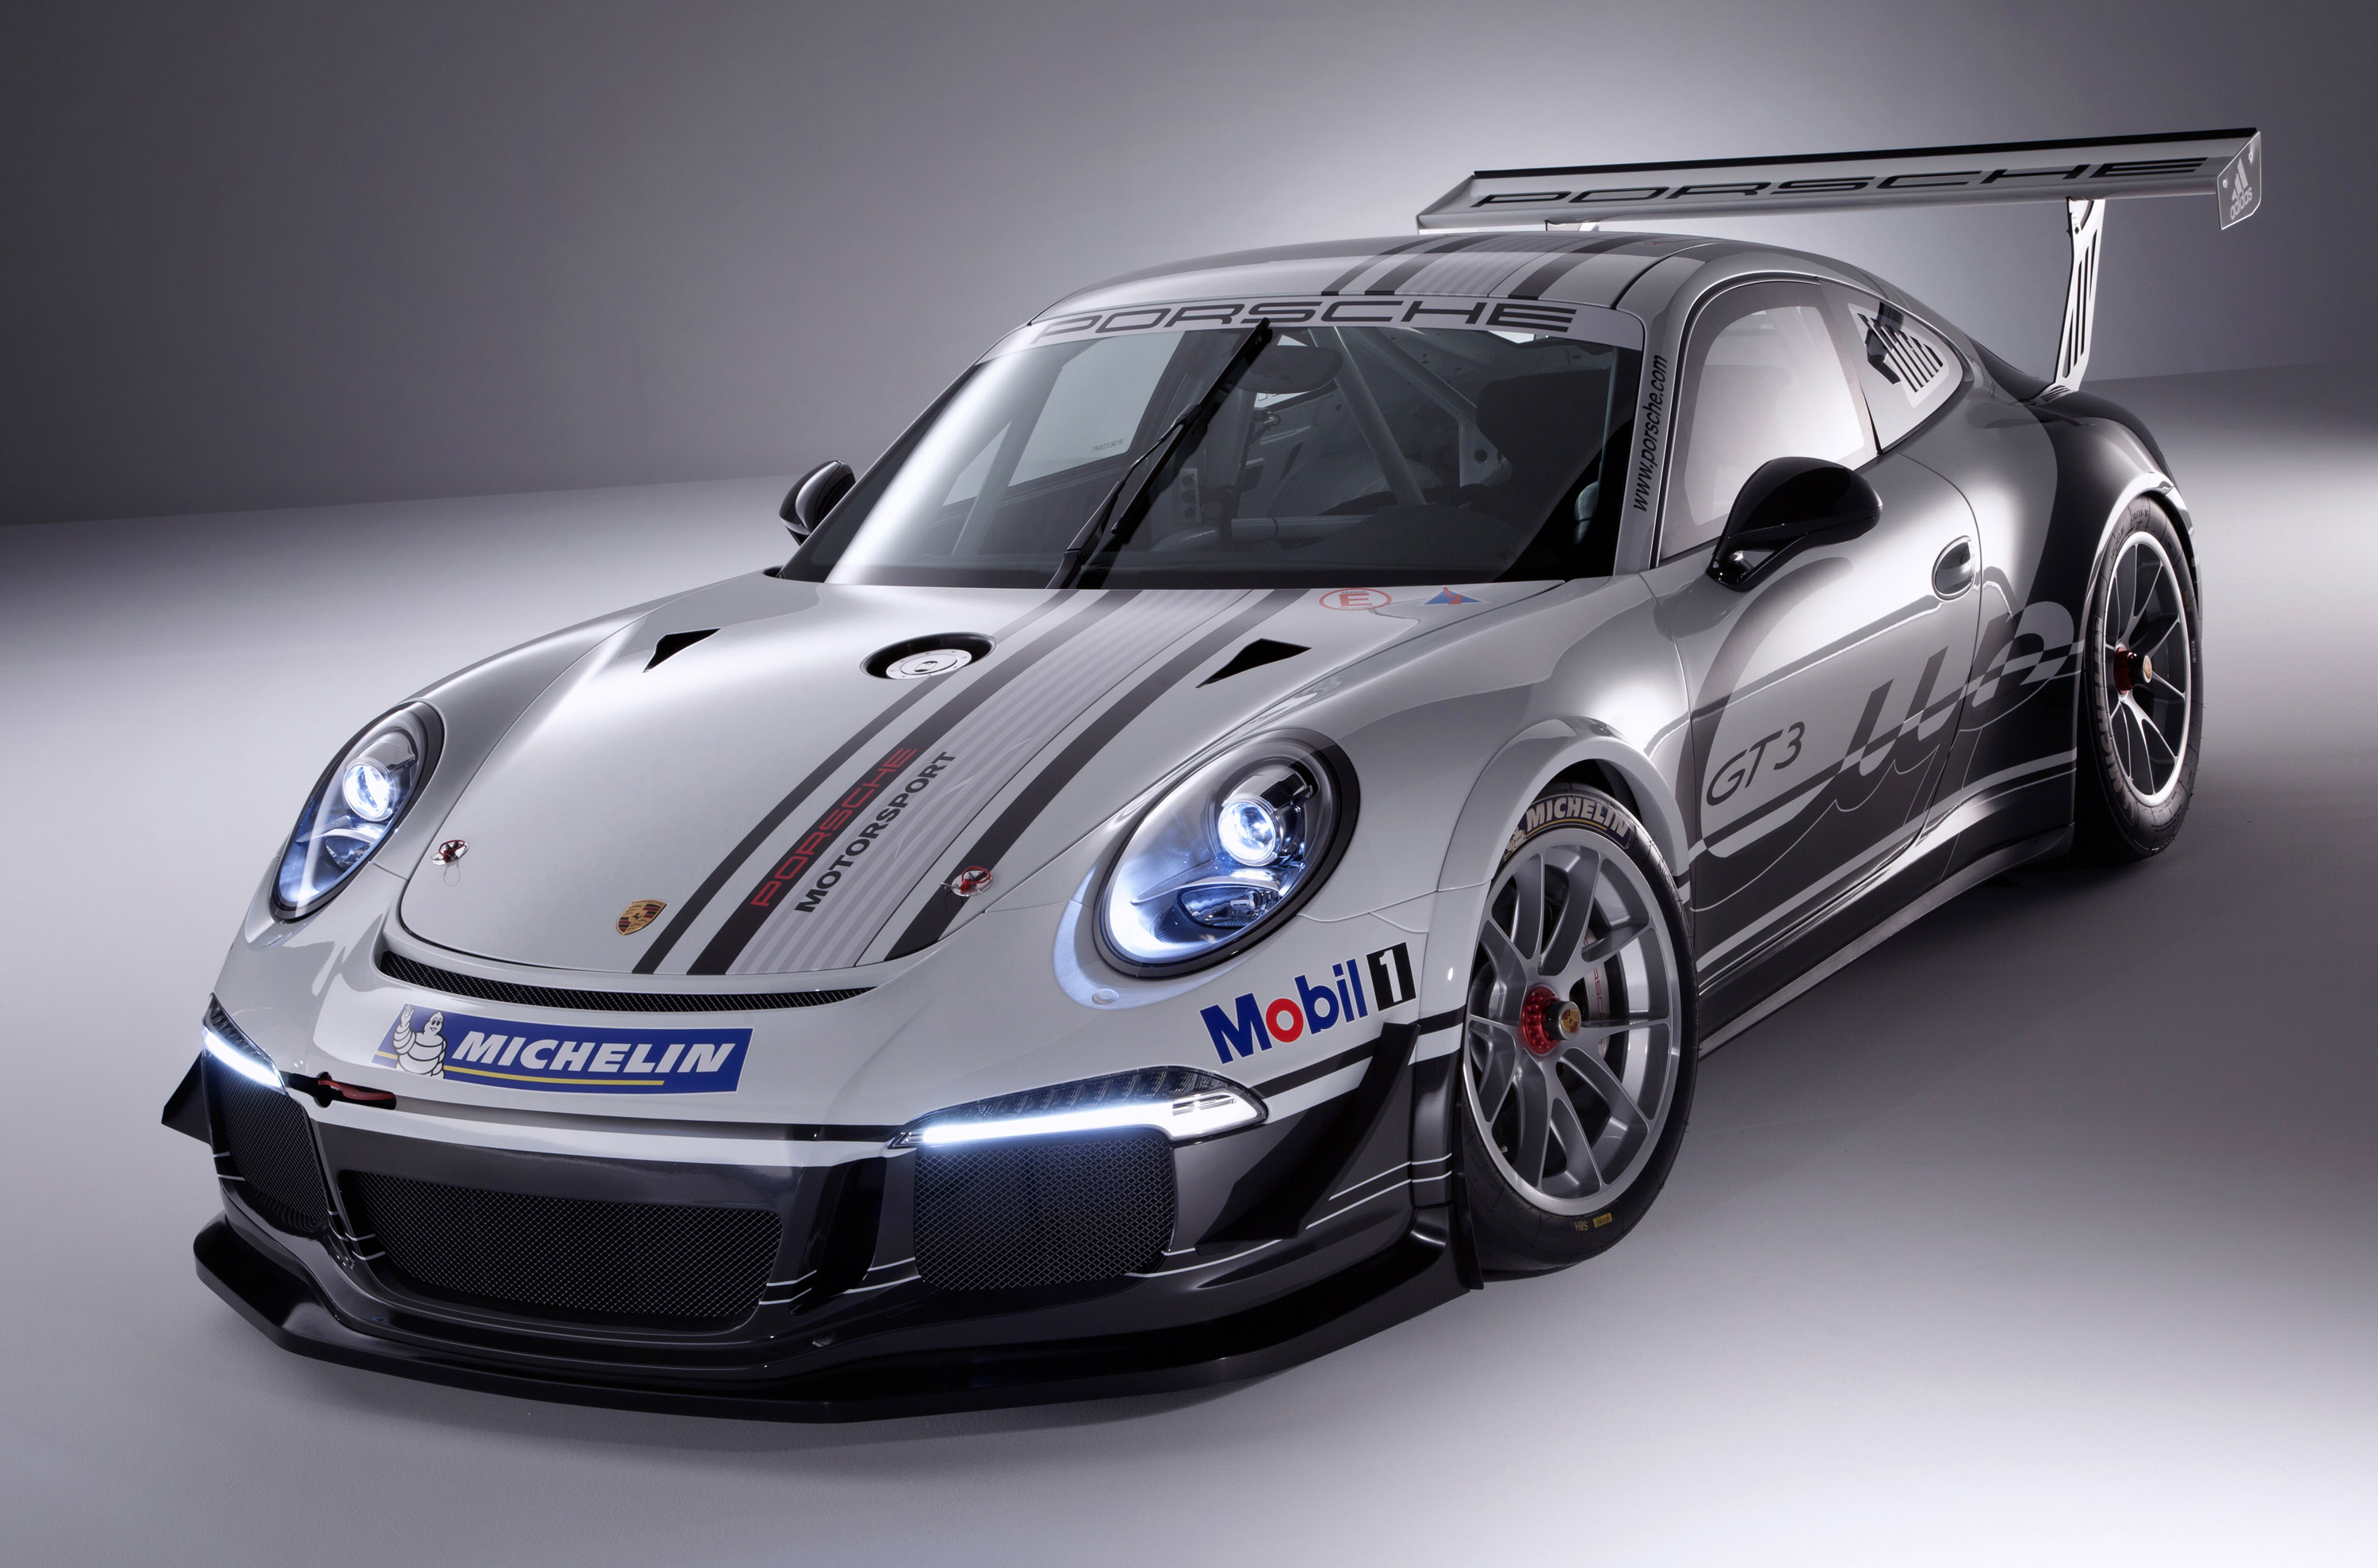 2013 Porsche 911 GT3 Cup Race Car - Picture 78634